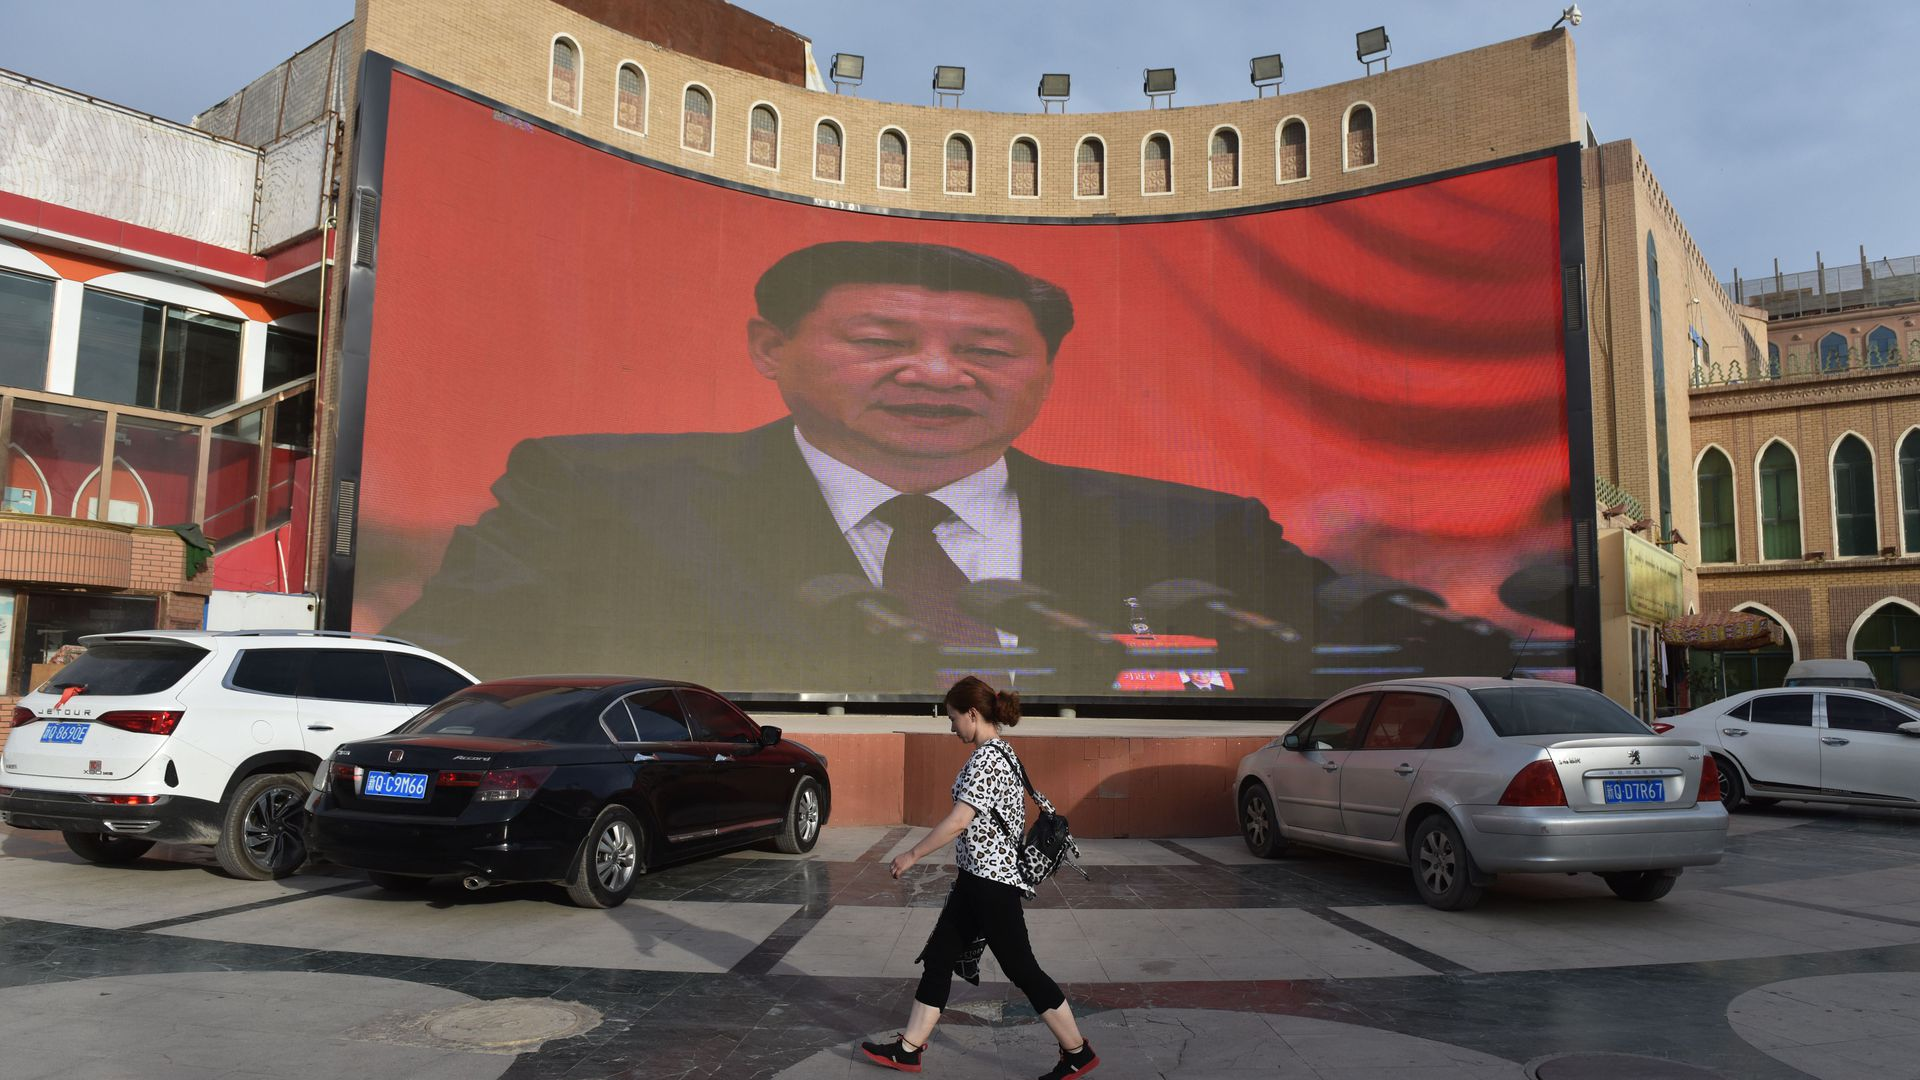 A screen showing images of Chinese President Xi Jinping in Xinjiang